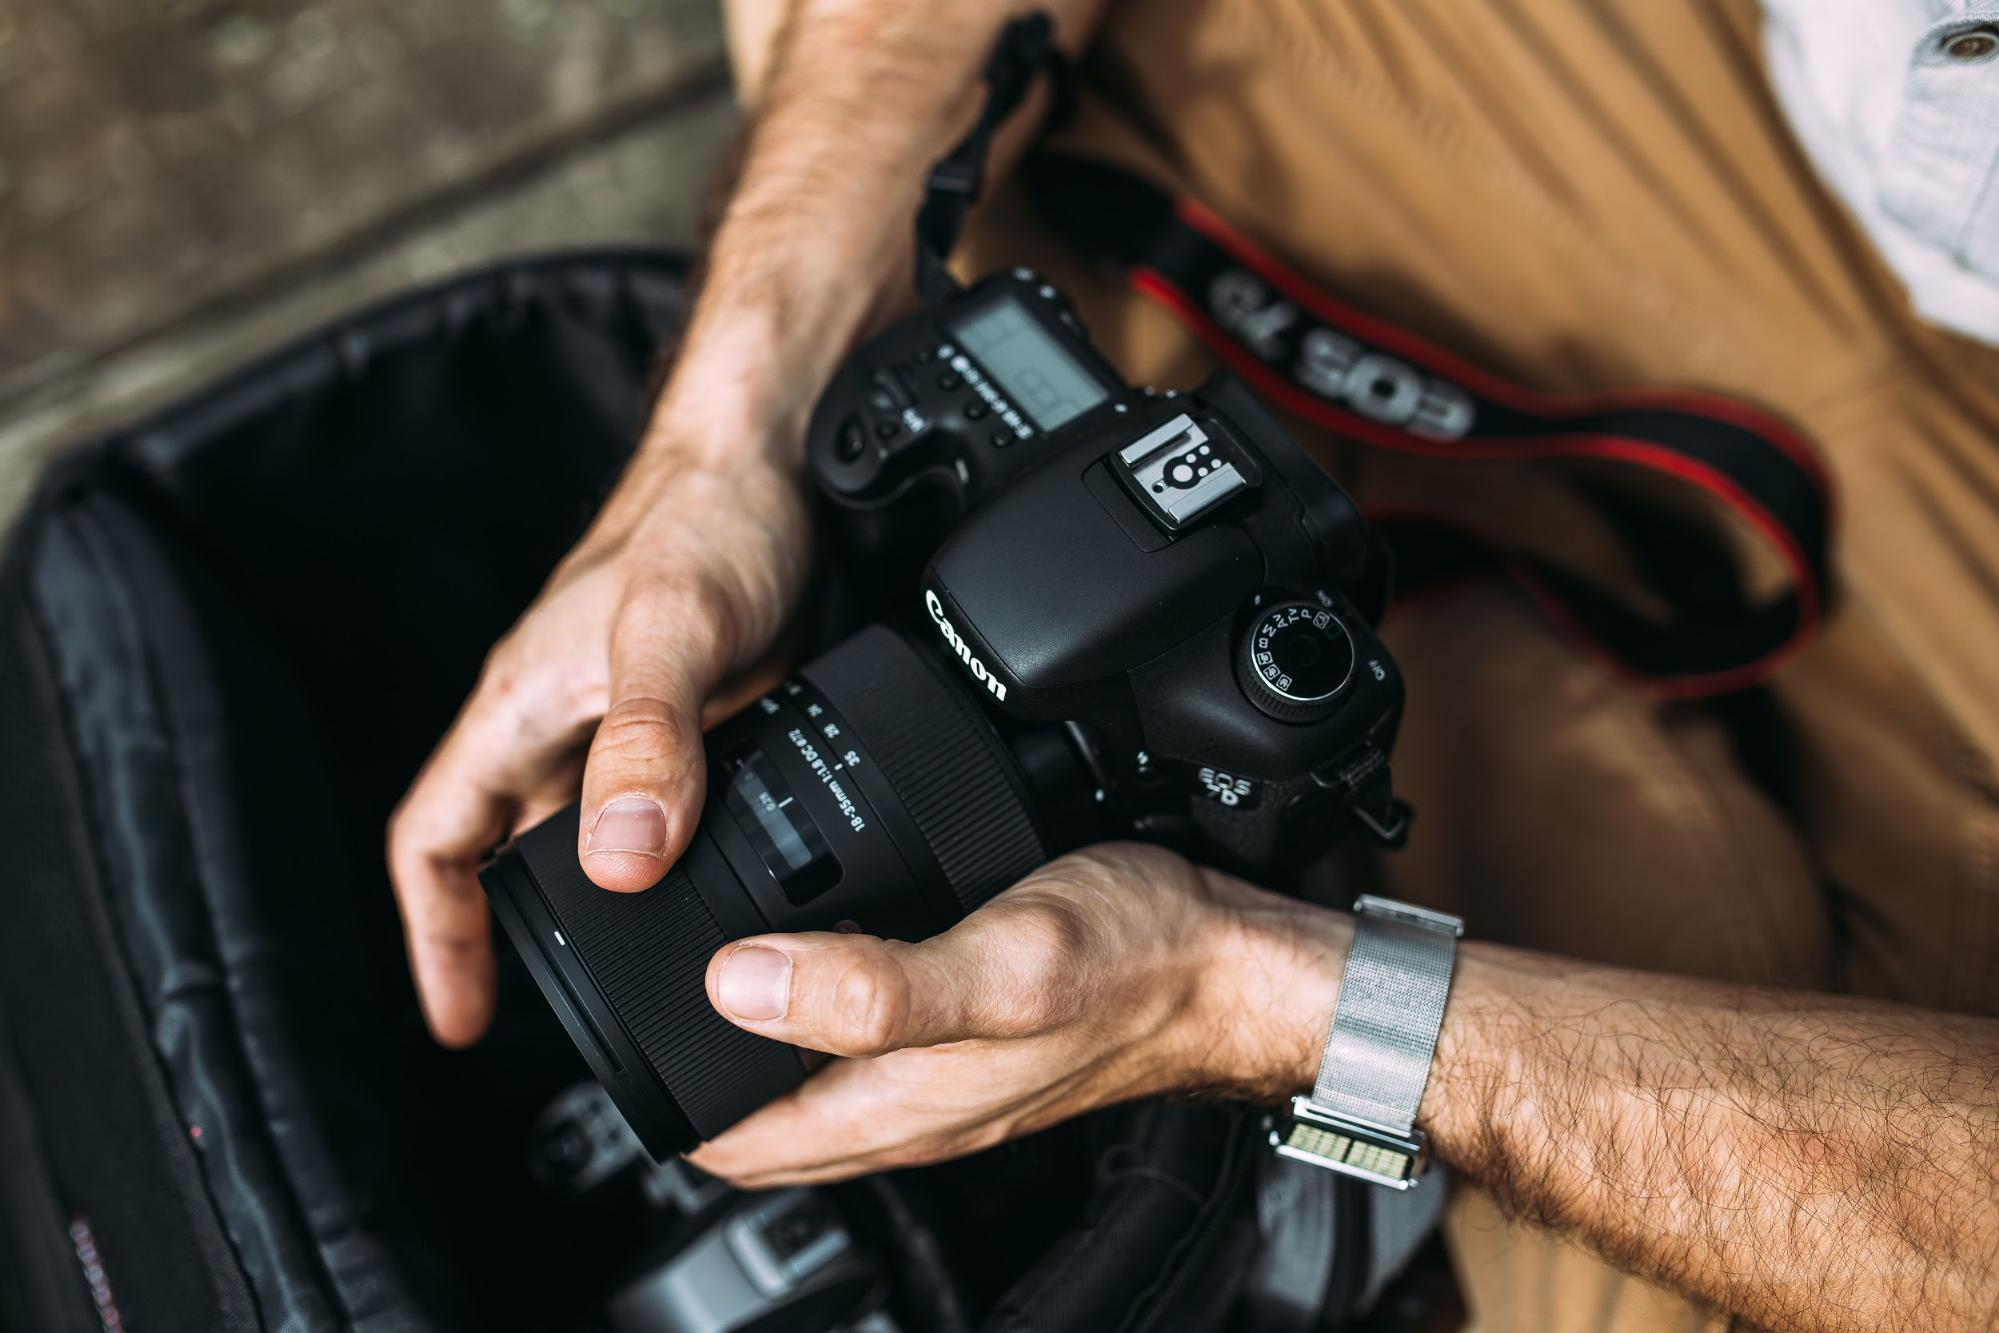 Video camera equipment in male hands